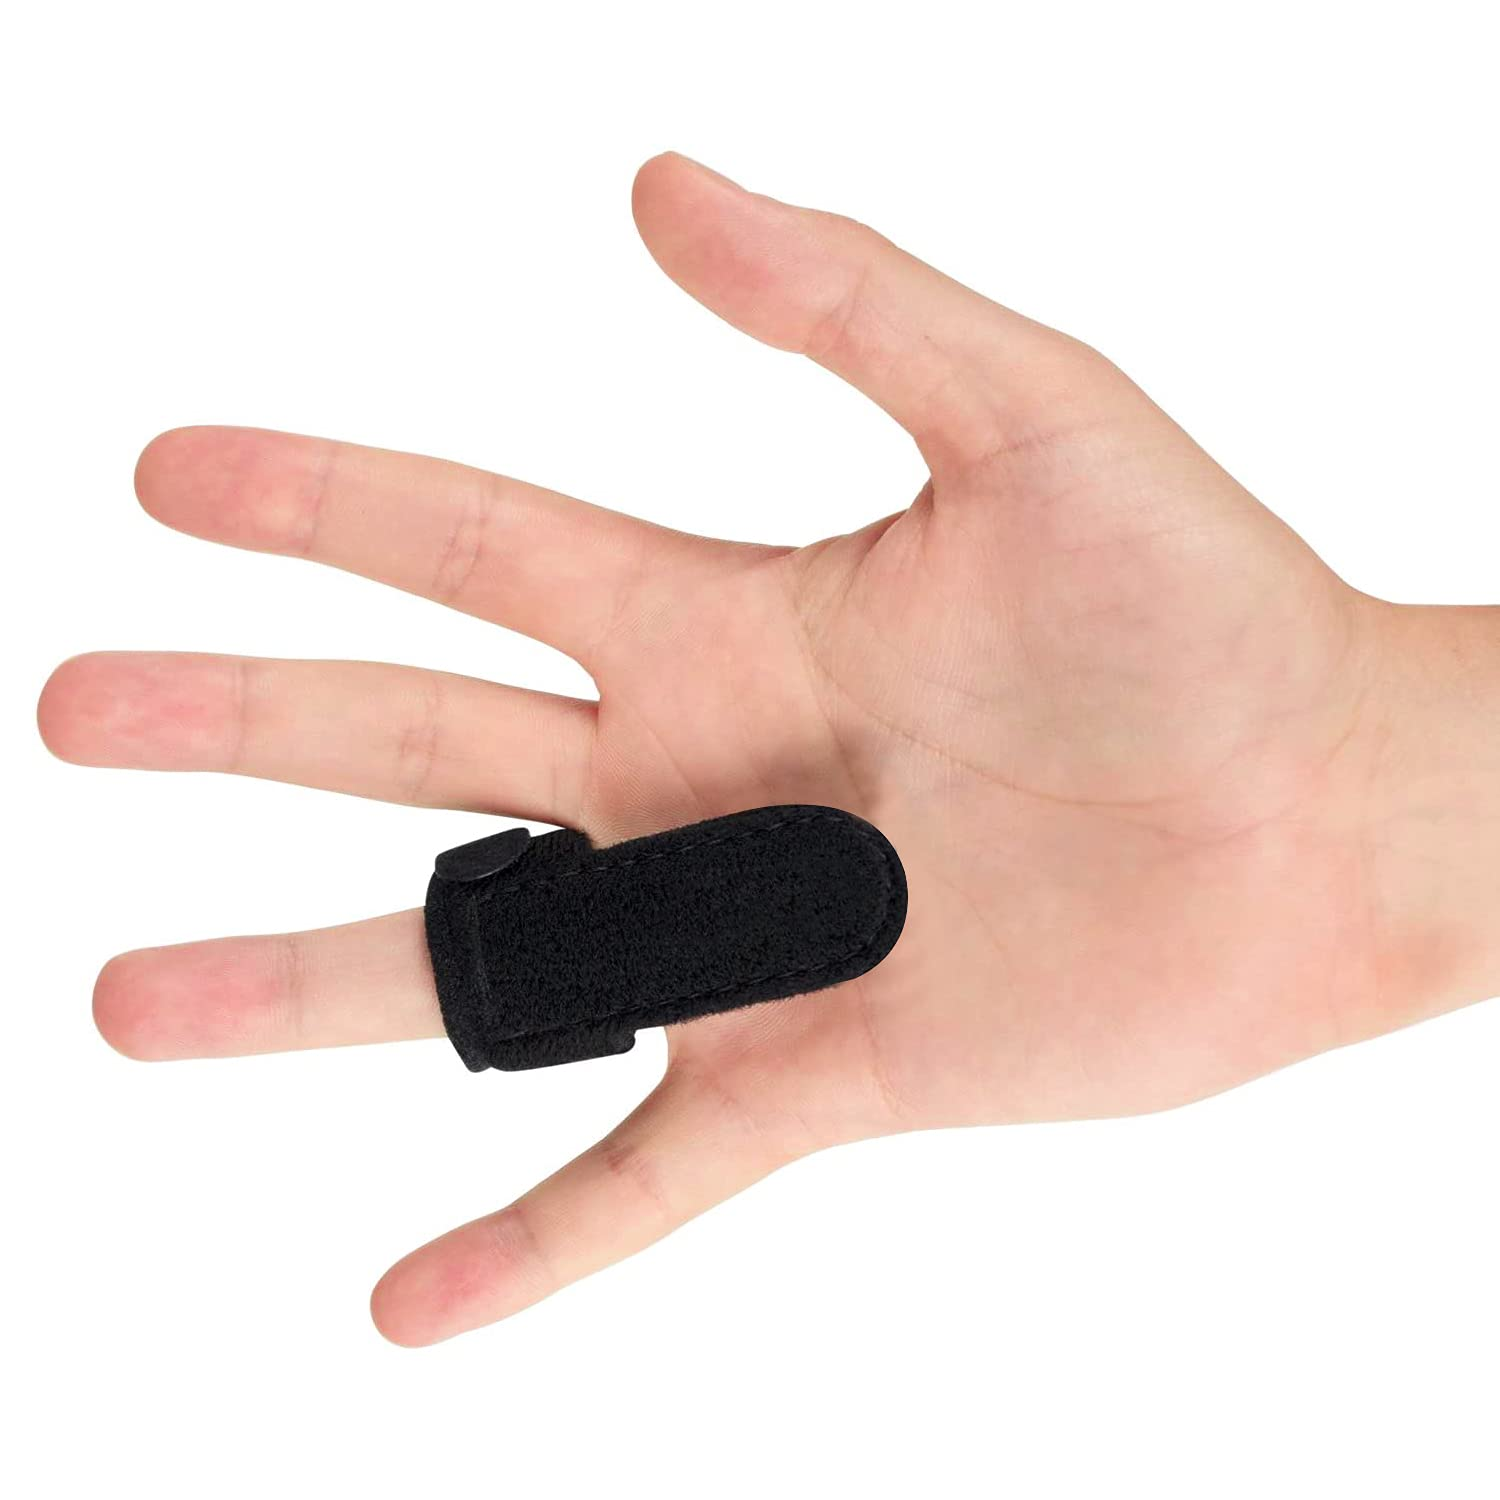 CTR New arrival Band Trigger Finger Splint - Middle Ring Support for Brace Ranking TOP17